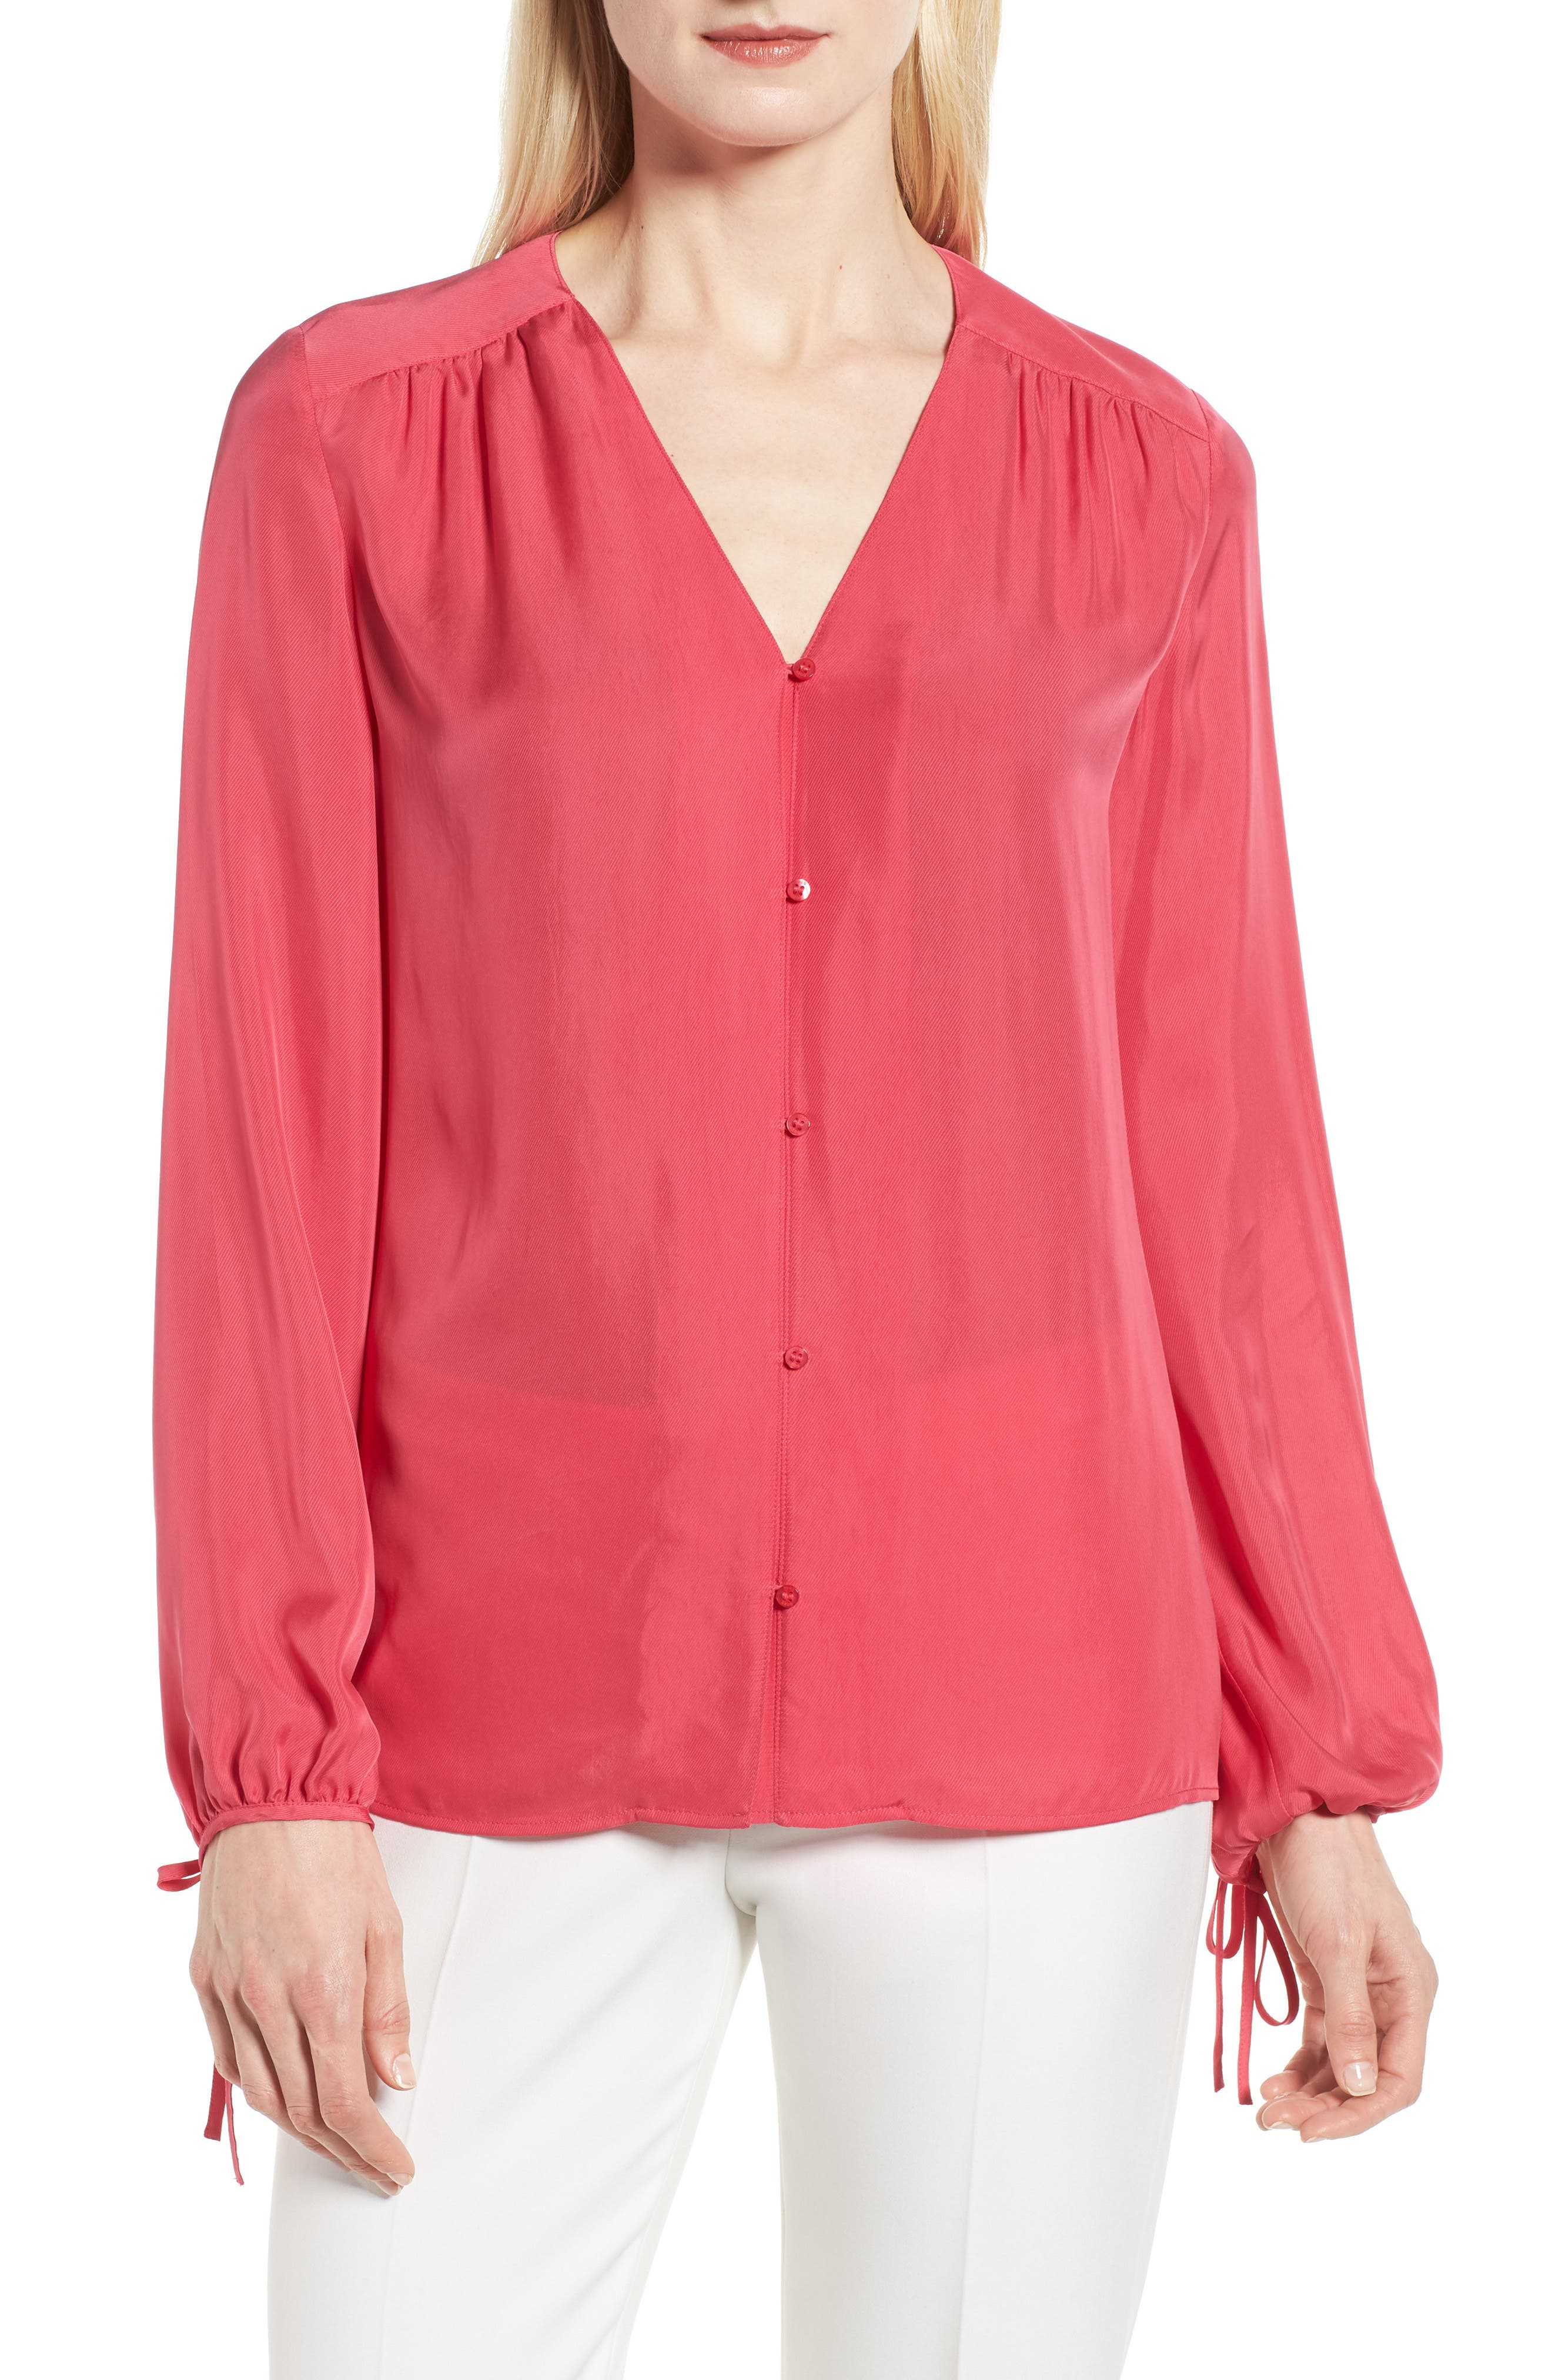 Rosalia Blouse,                         Main,                         color,